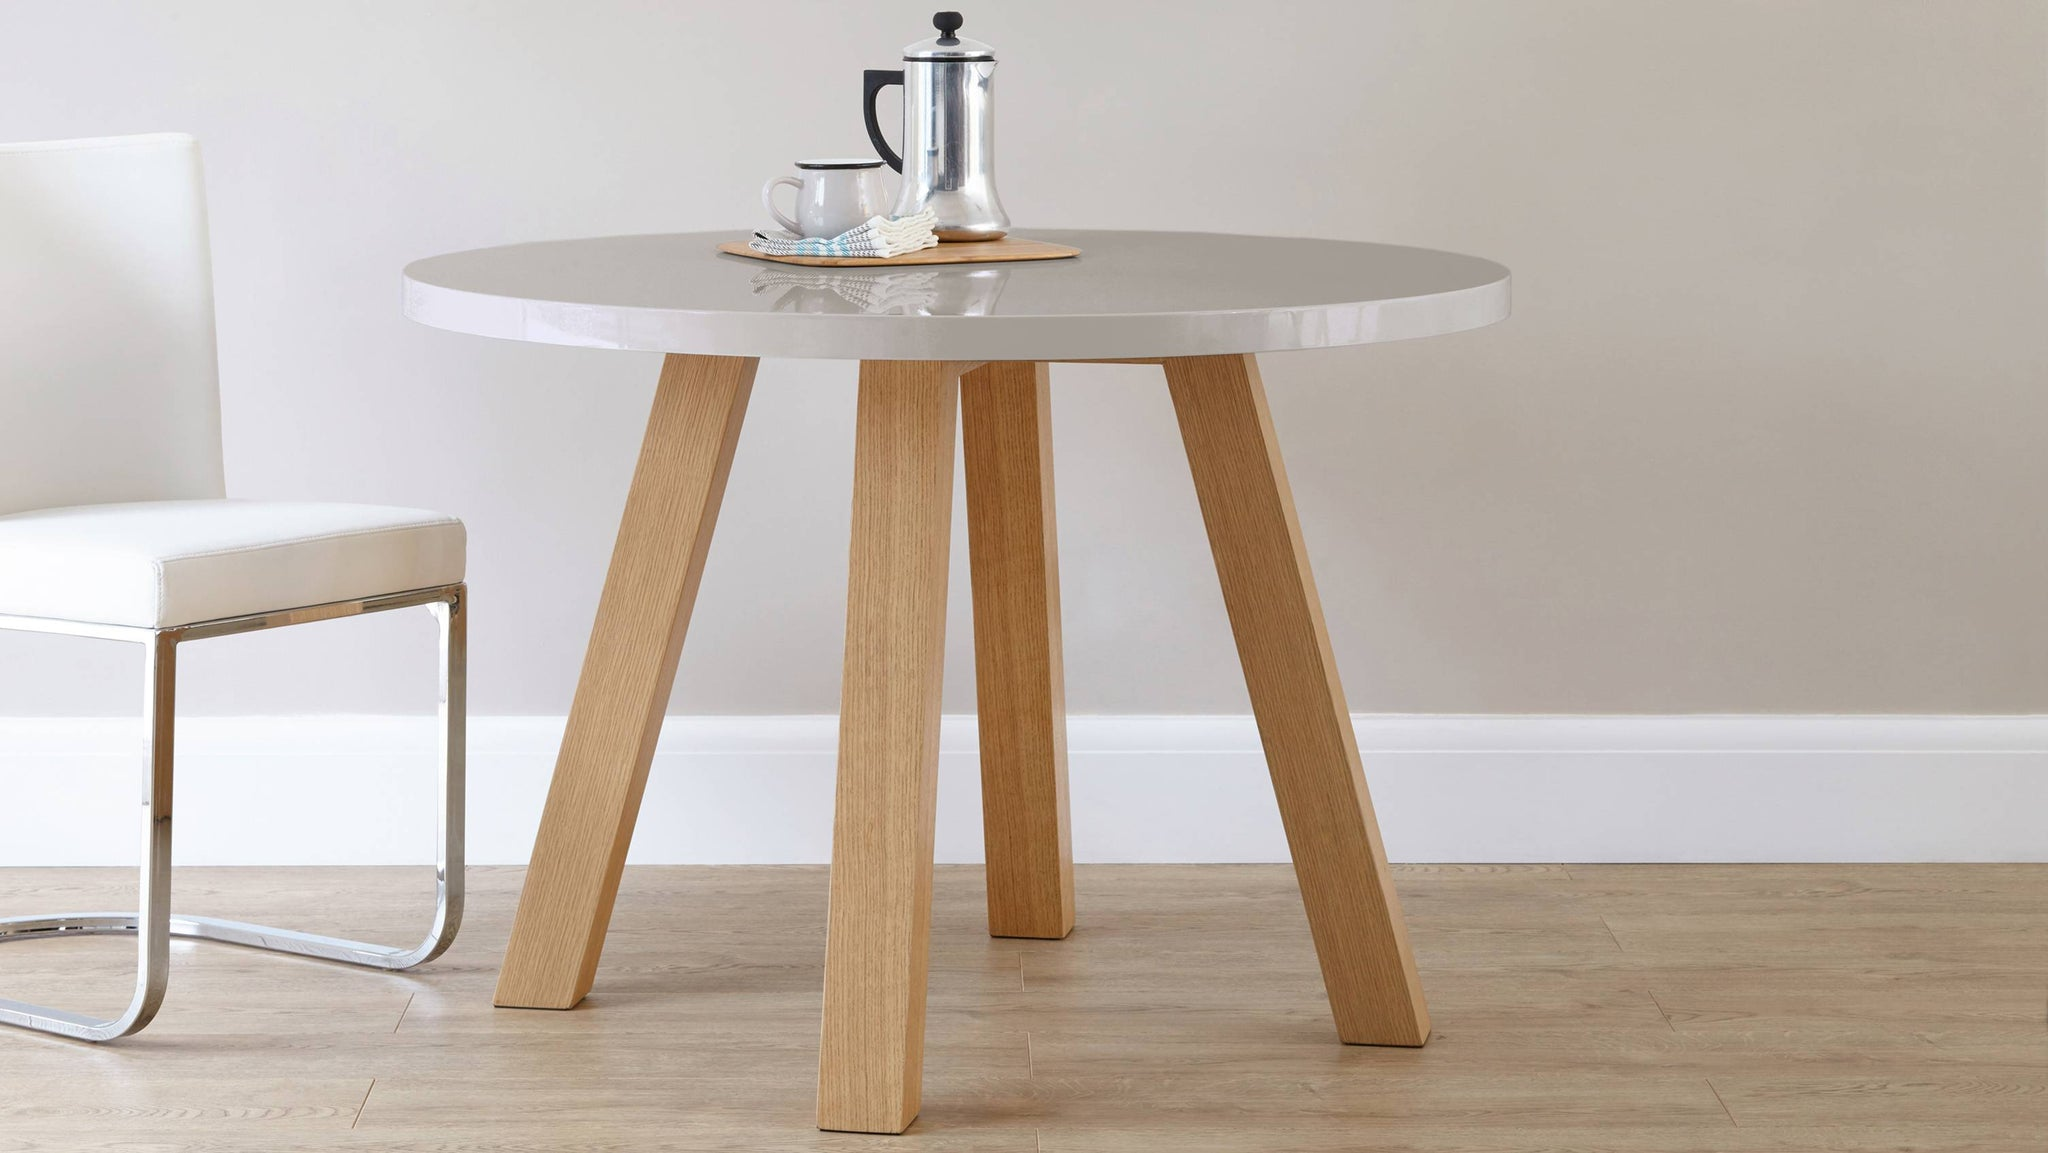 grey gloss and oak modern round dining table Exclusively Danetti with Julia Kendell Range